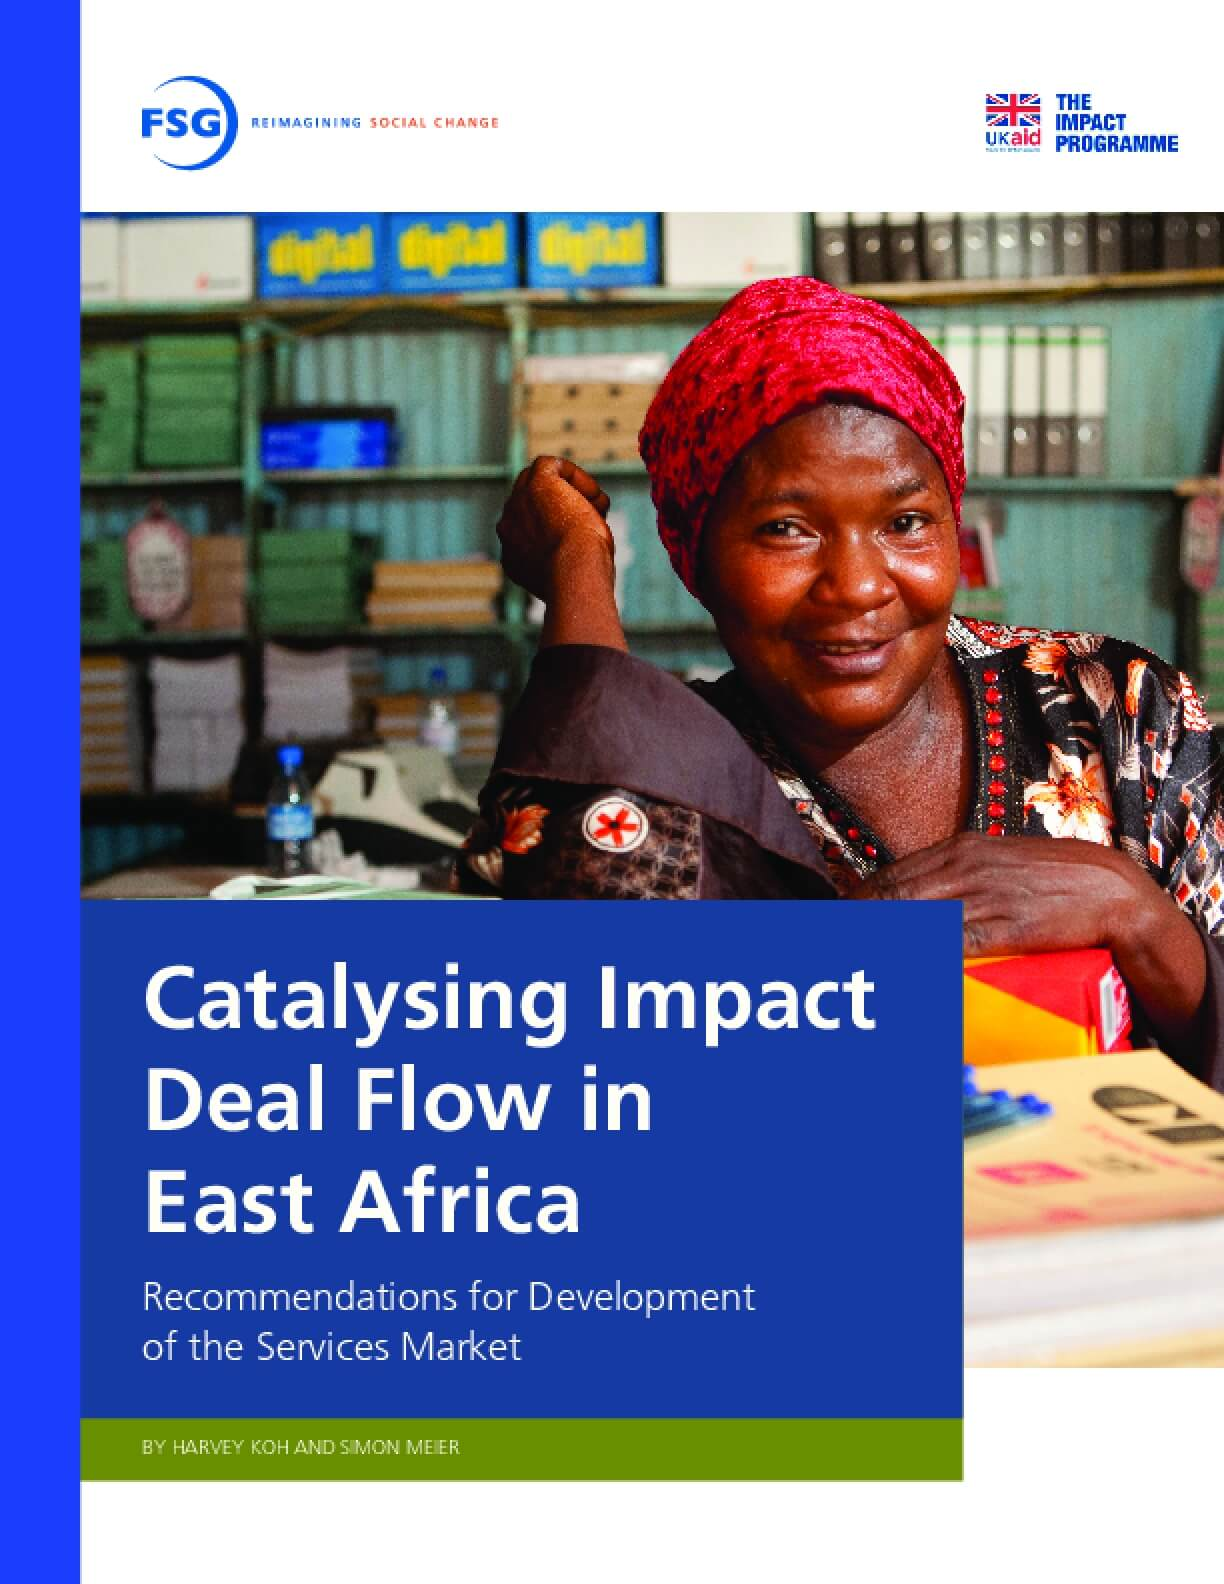 Catalysing Impact Deal Flow in East Africa: Recommendations for Development of the Services Market